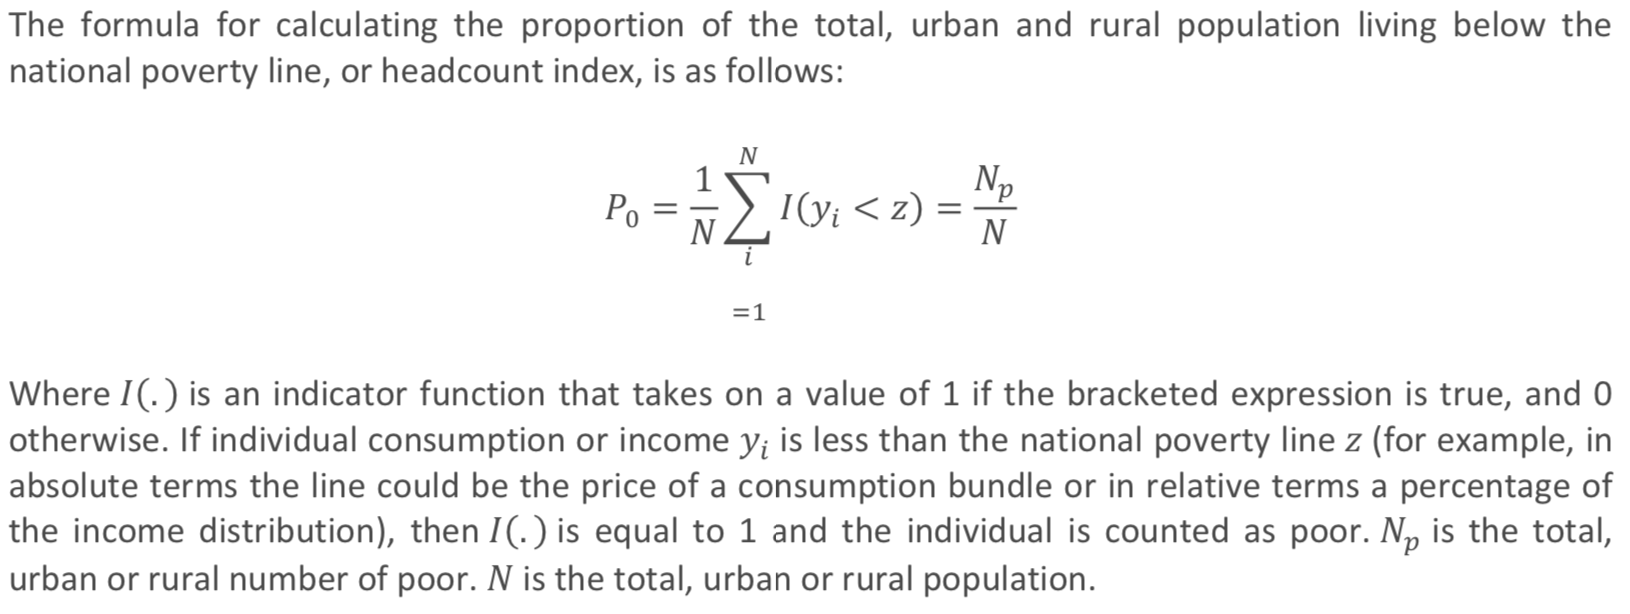 formula for calculating the proportion of the total, urban and rural population living below the national poverty line, or headcount index